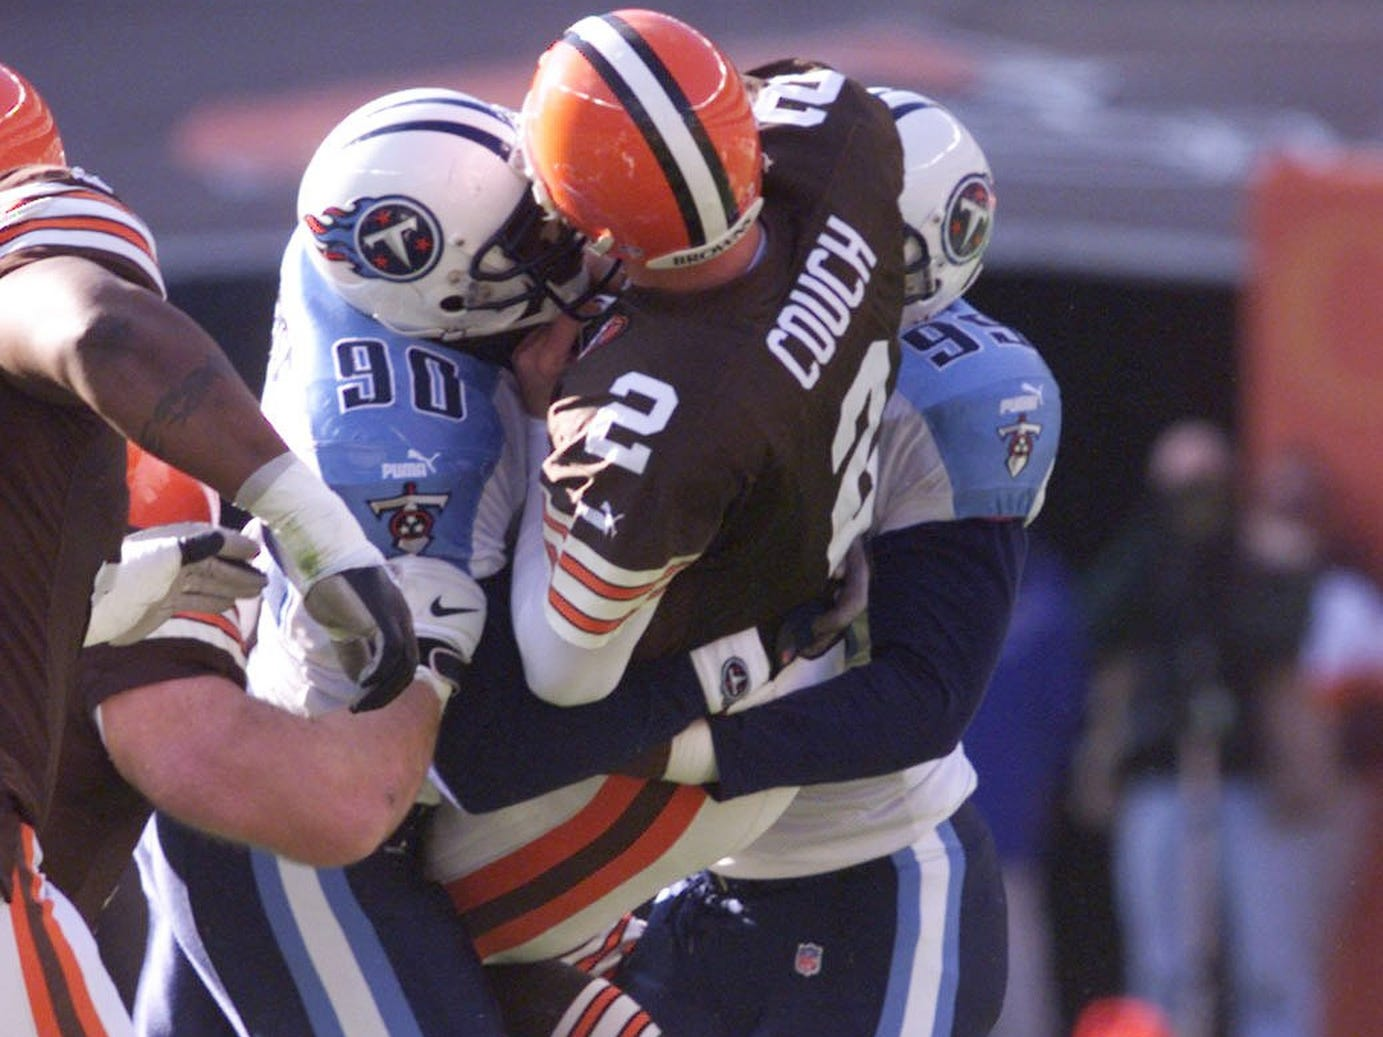 Tennessee Titans defenders Jevon Kearse, left and Kenny Holmes pick up Cleveland Browns quarterback Tim Couch and body slam him into the Cleveland Browns Stadium's turf. Titans went on to a 33-21 victory Nov. 28, 1999.